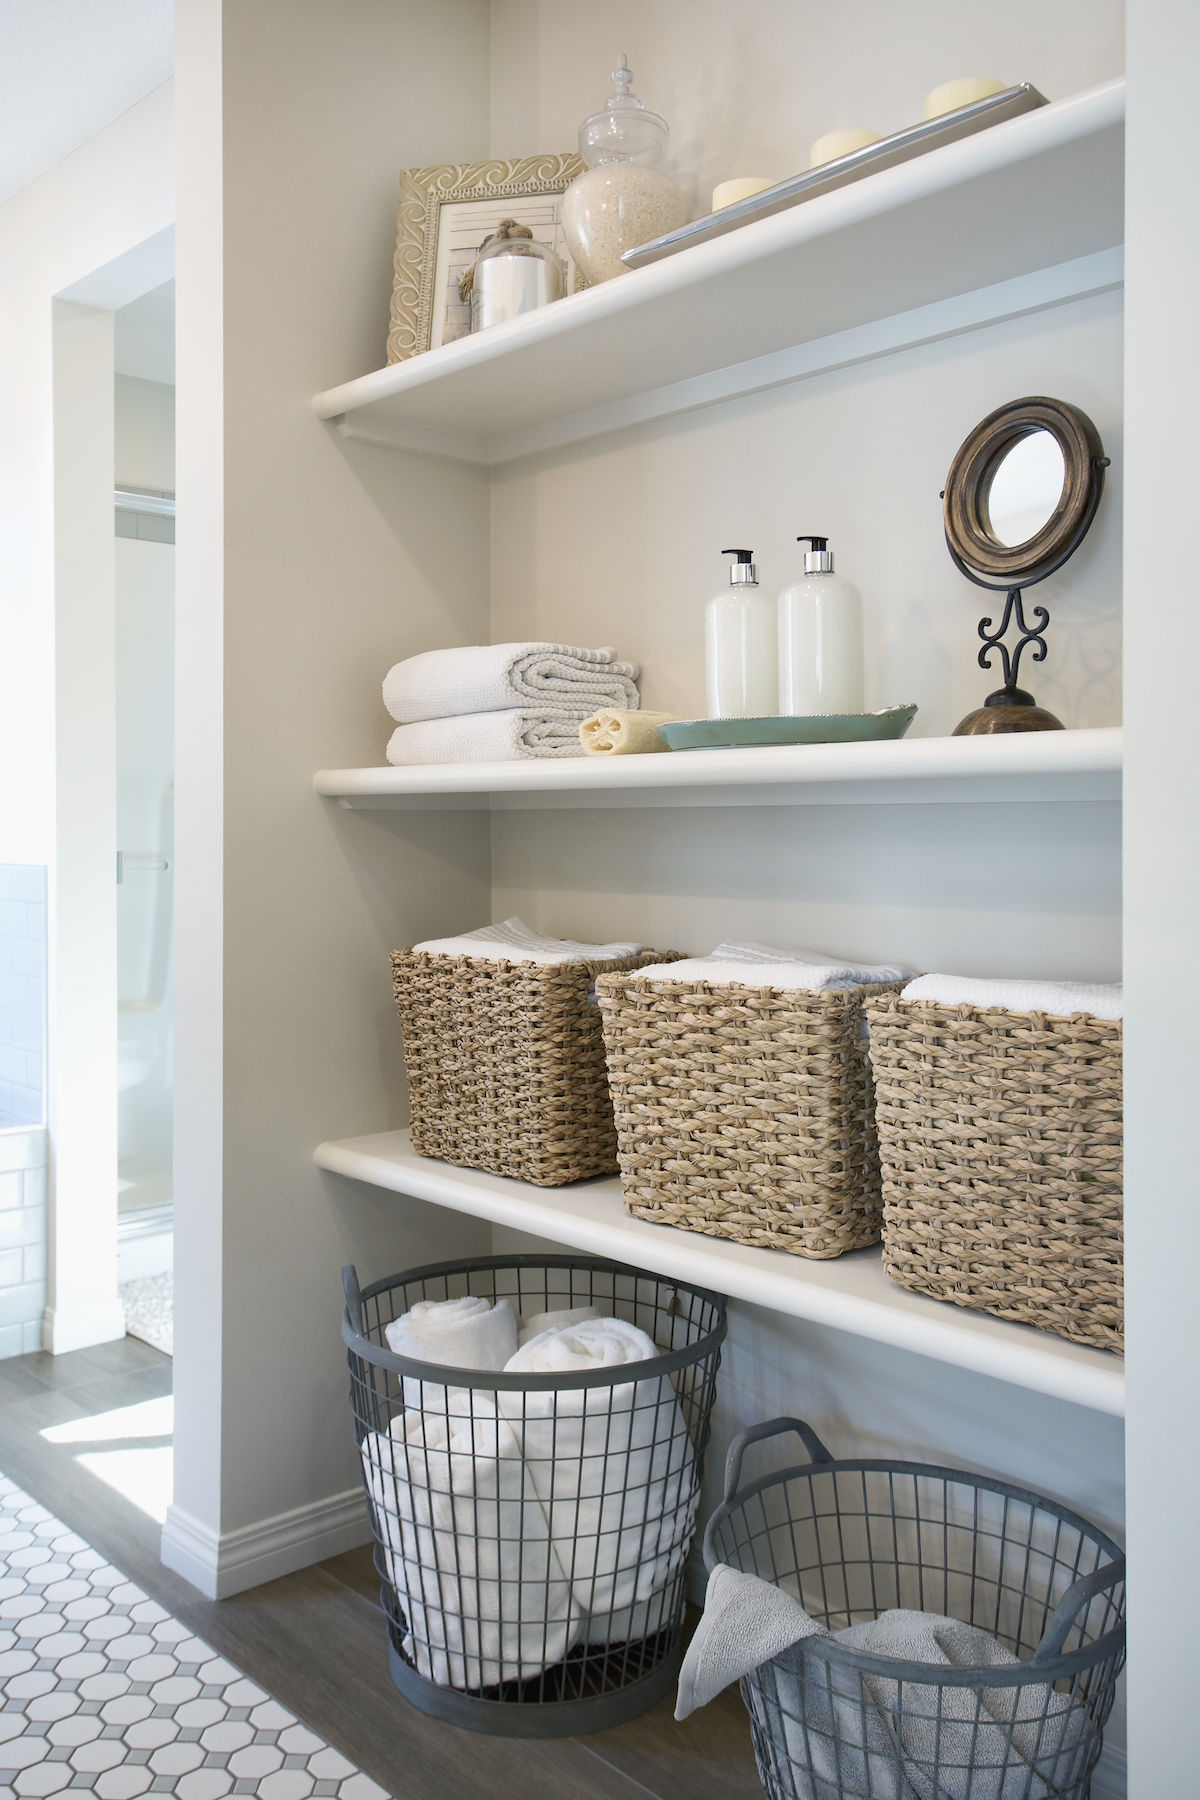 How clean bathroom hand towels, organized linen closet